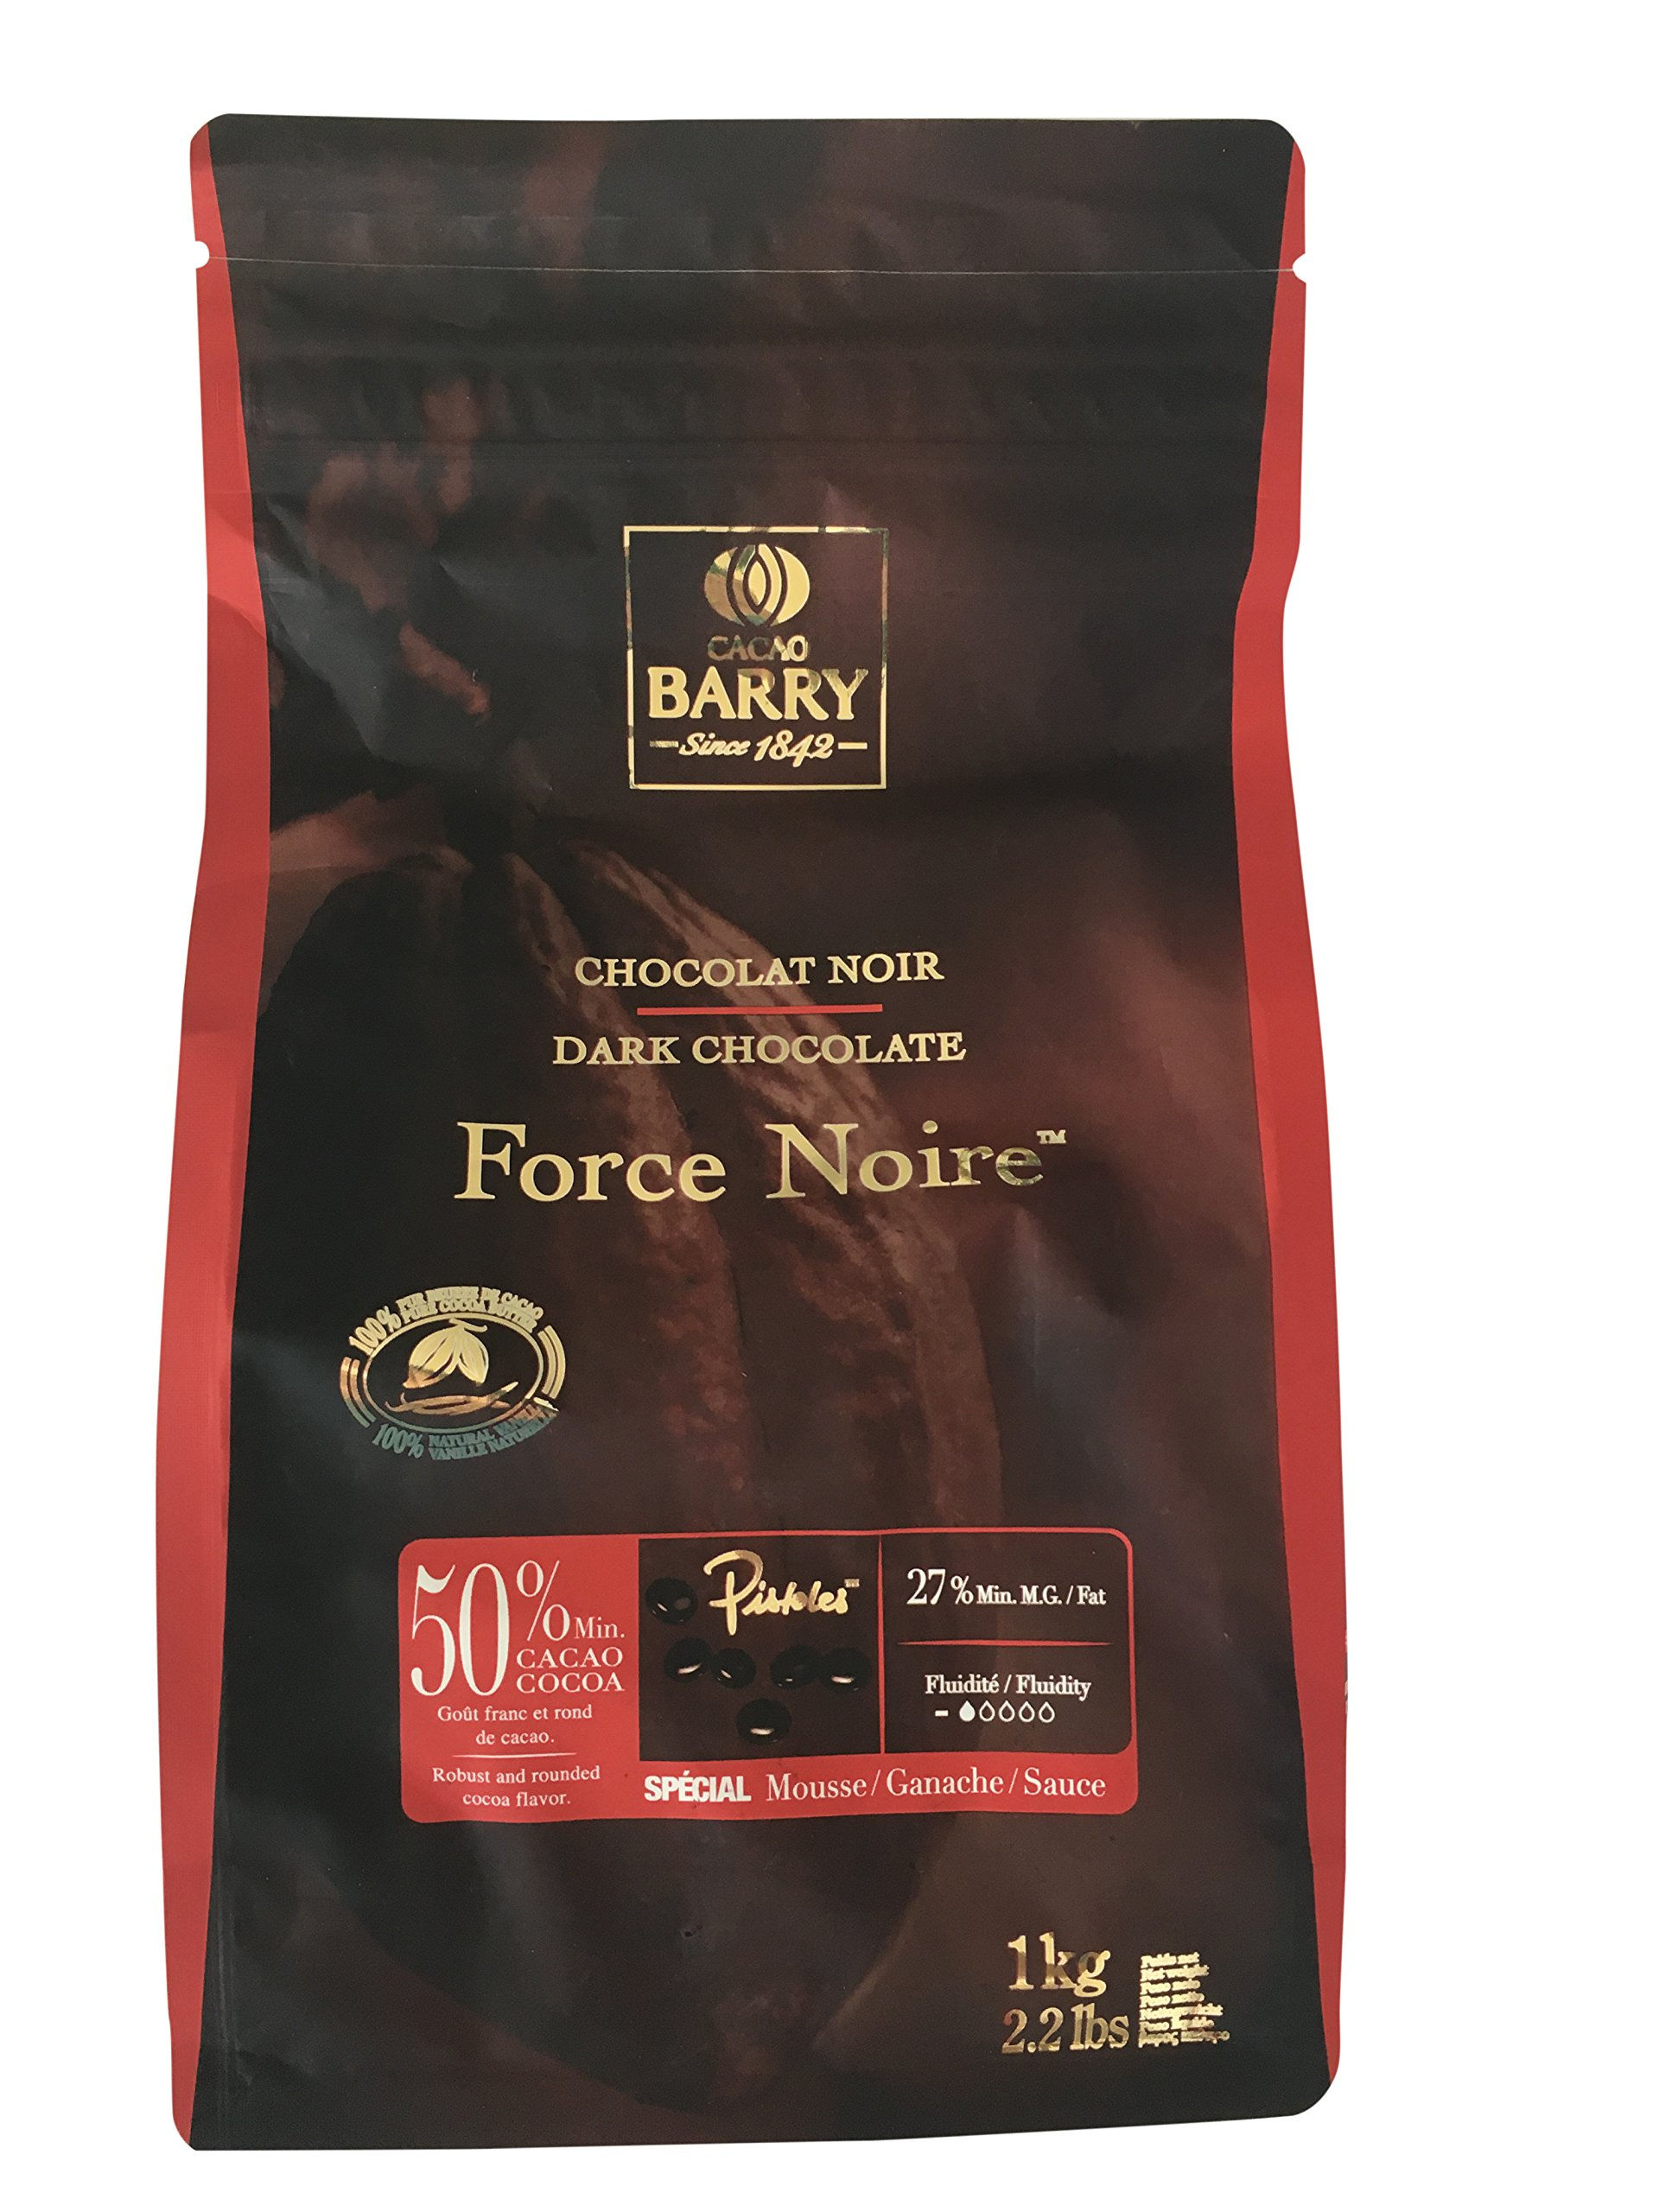 Barry Callebaut Force Noire Chocolate beans - 50% cocoa Dark chocolate 1kg 2.2lbs by Callebaut